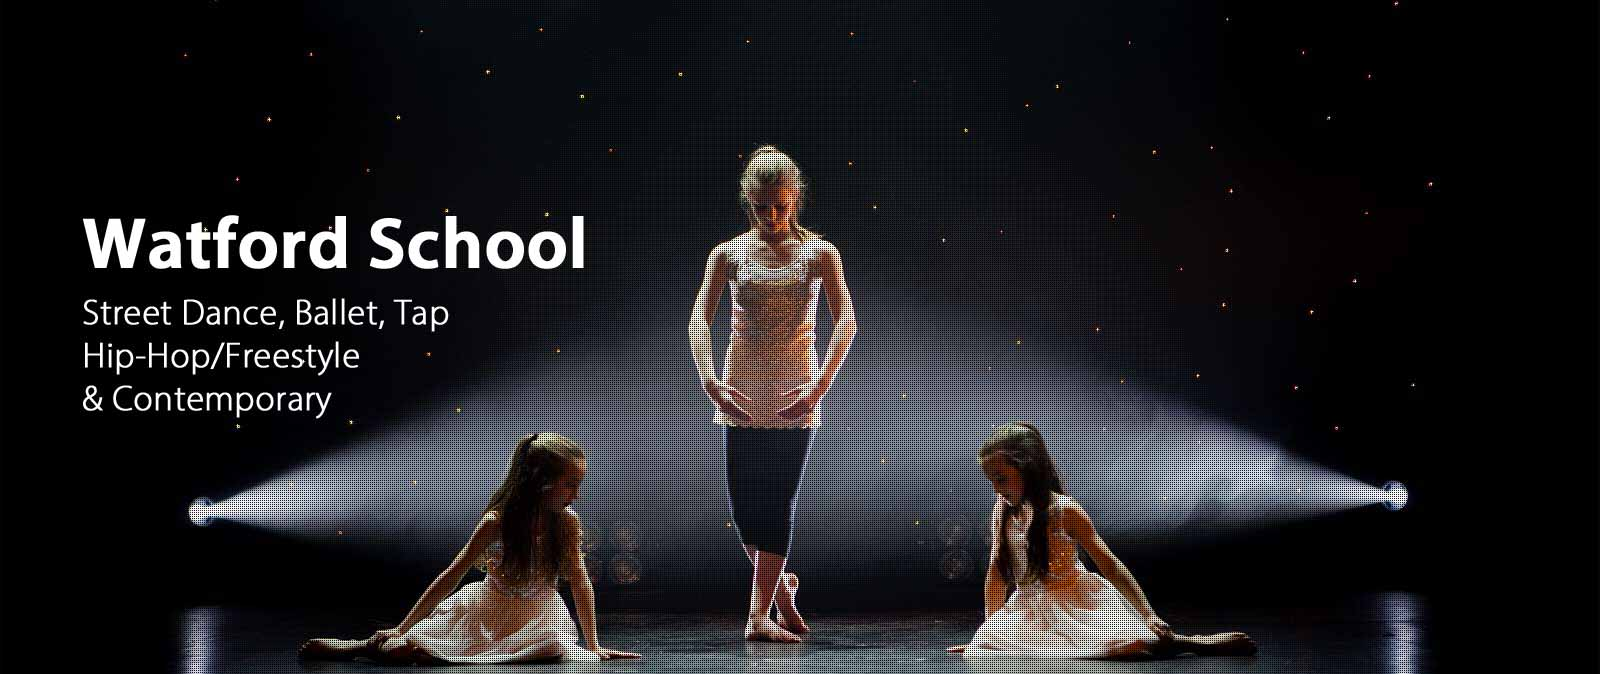 Aviv Dance Studios - Watford Dance School - Street dance, ballet, tap, hip hop, freestyle & contemporary dance lessons